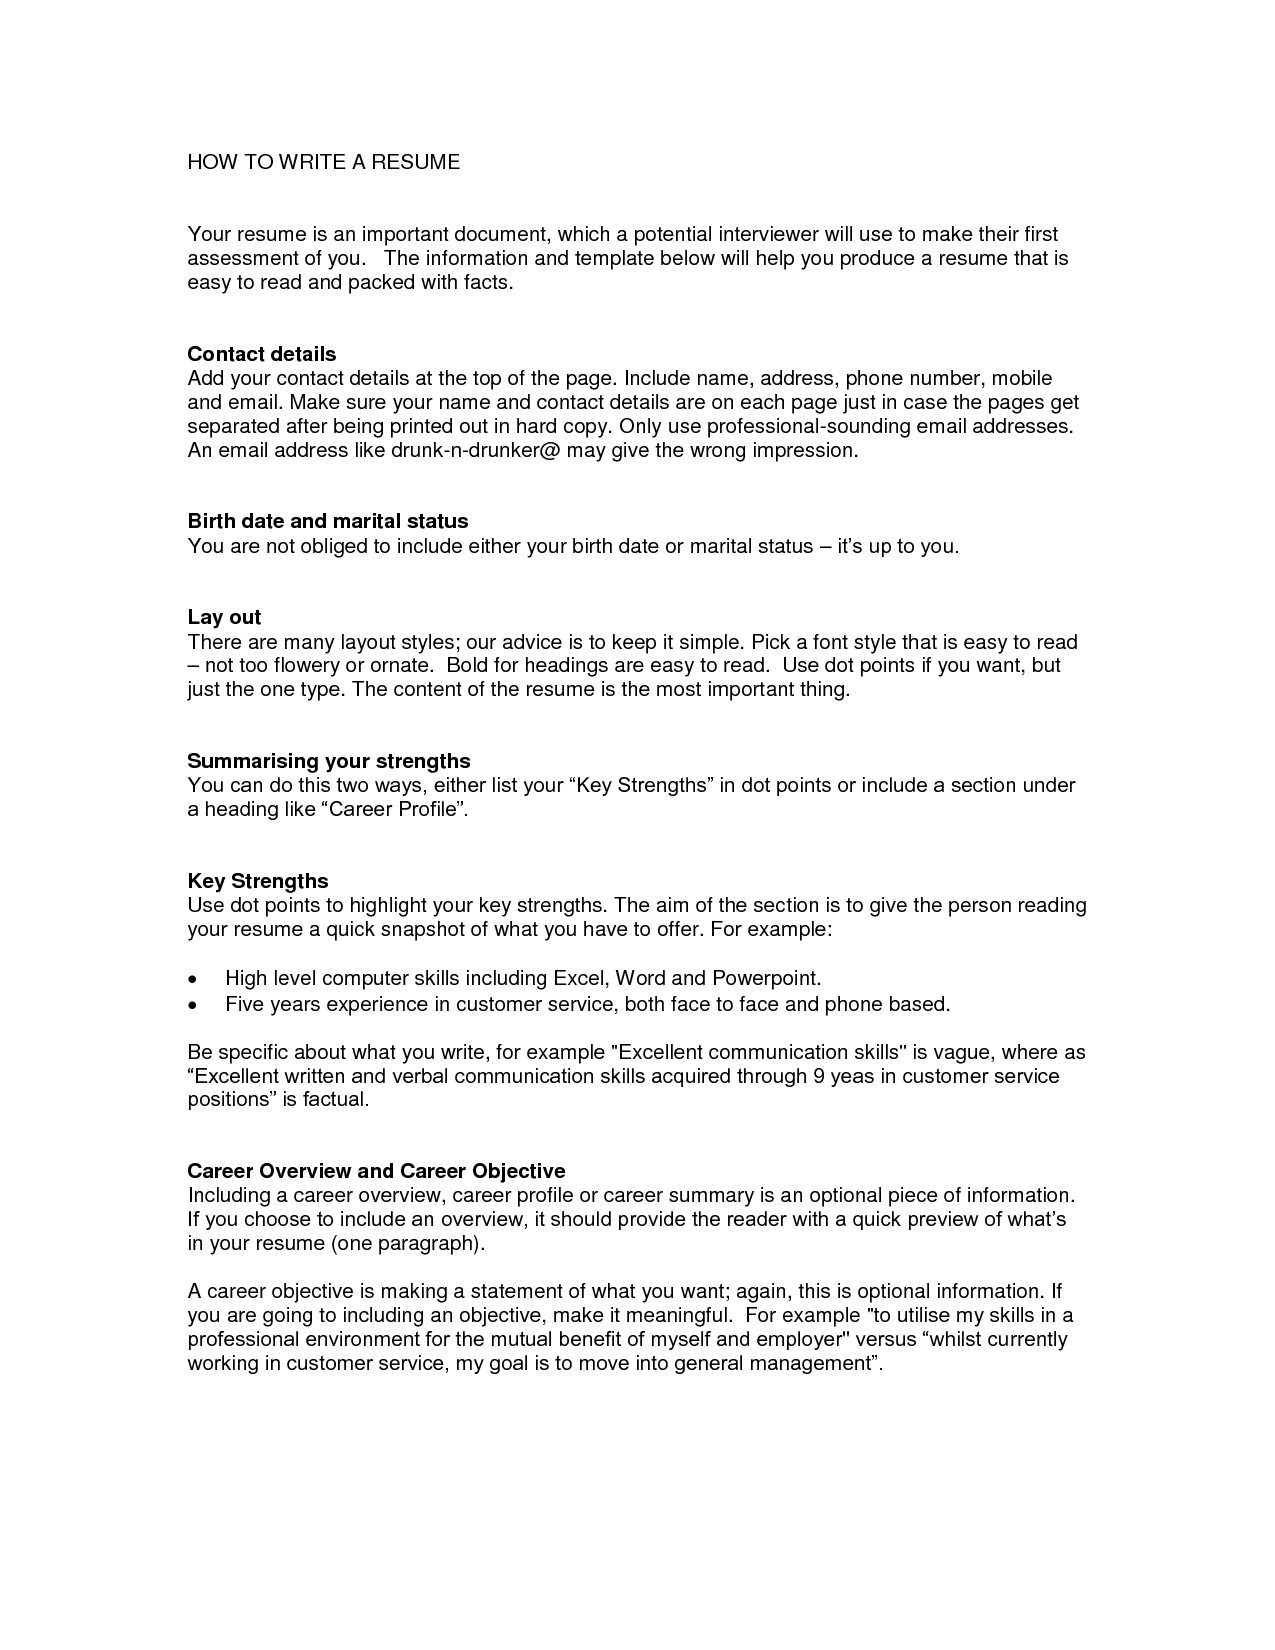 How To Write A Detailed Resume How To Write A Resume Net The Easiest Online Resume